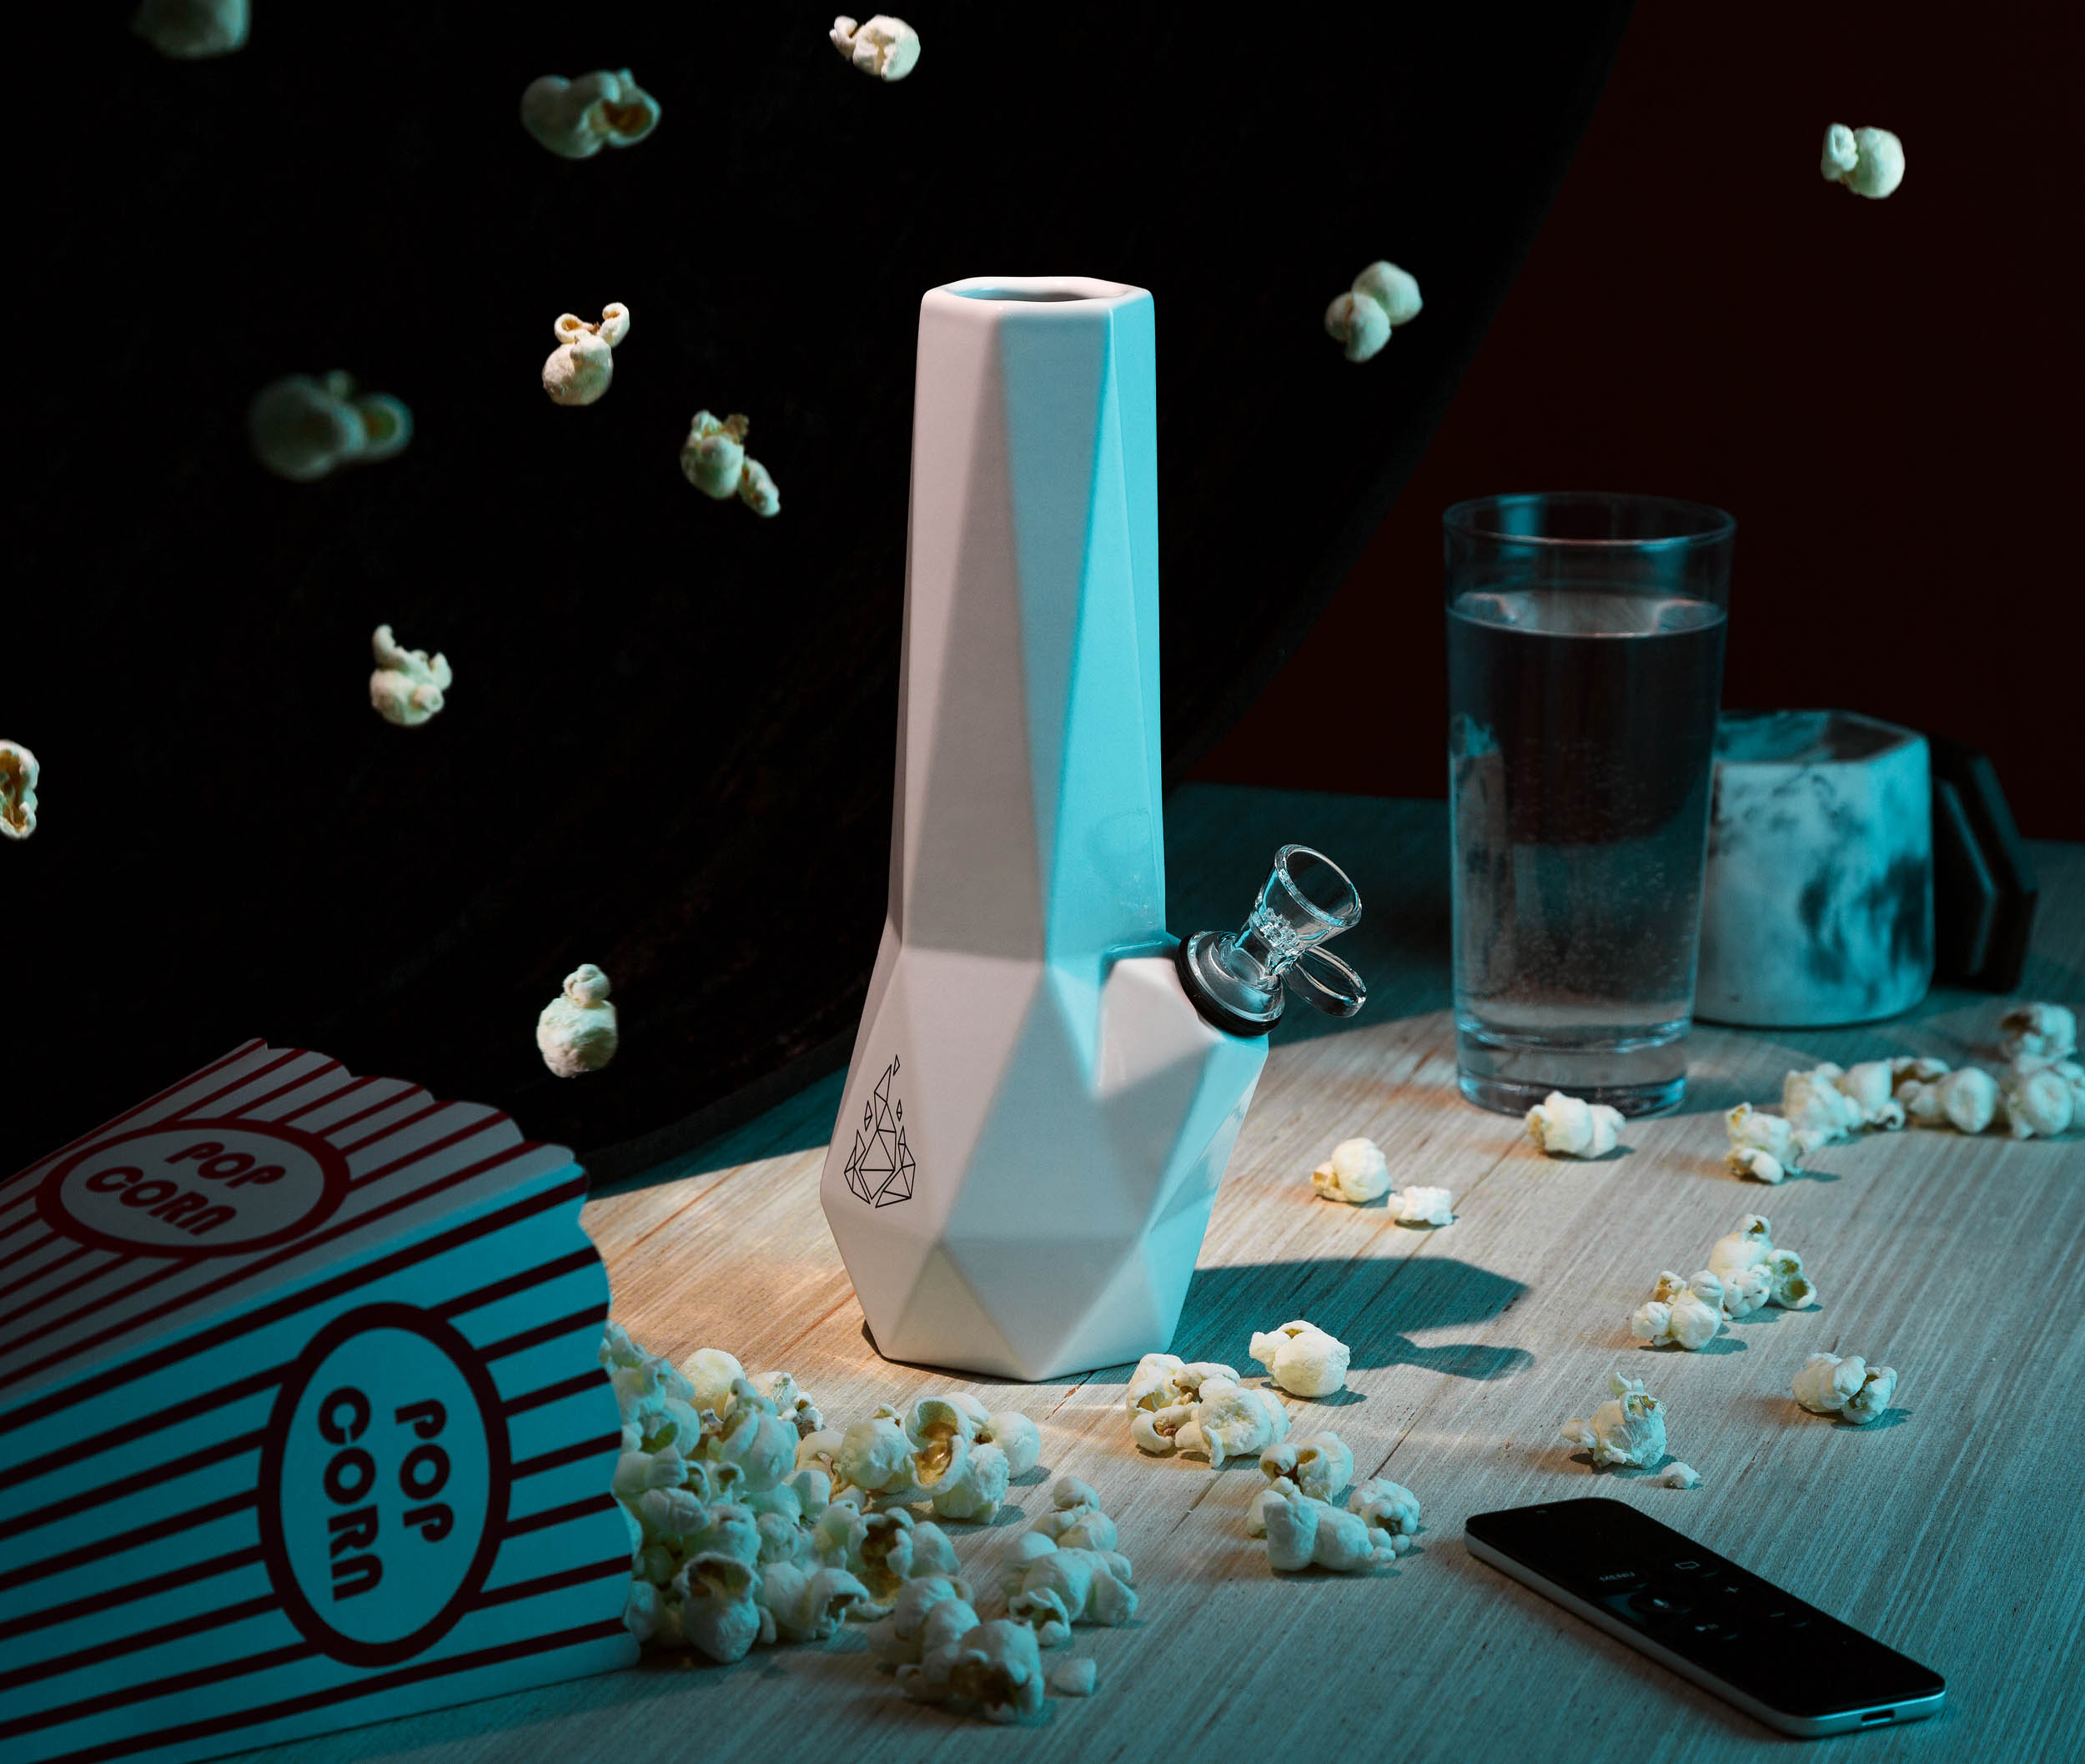 Conceptual product photography for BRNT of Hexagon cannabis bong